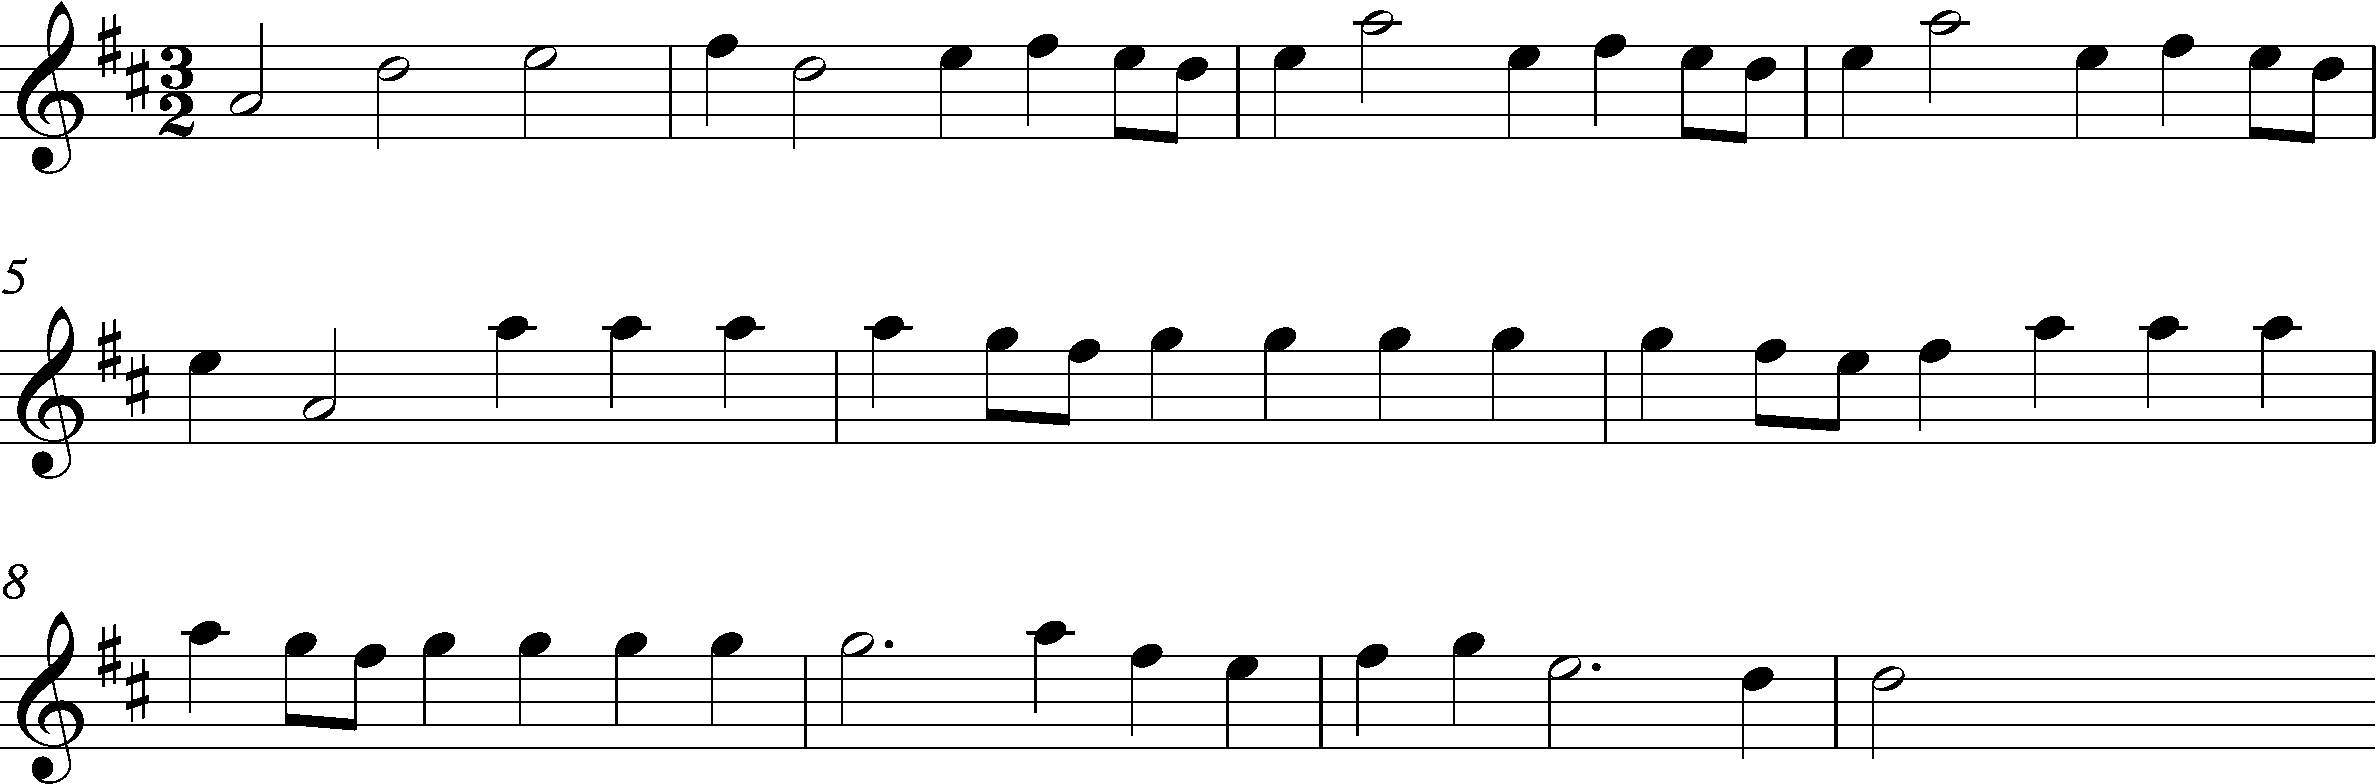 File:Handel Hornpipe from Water Music.png - Wikipedia